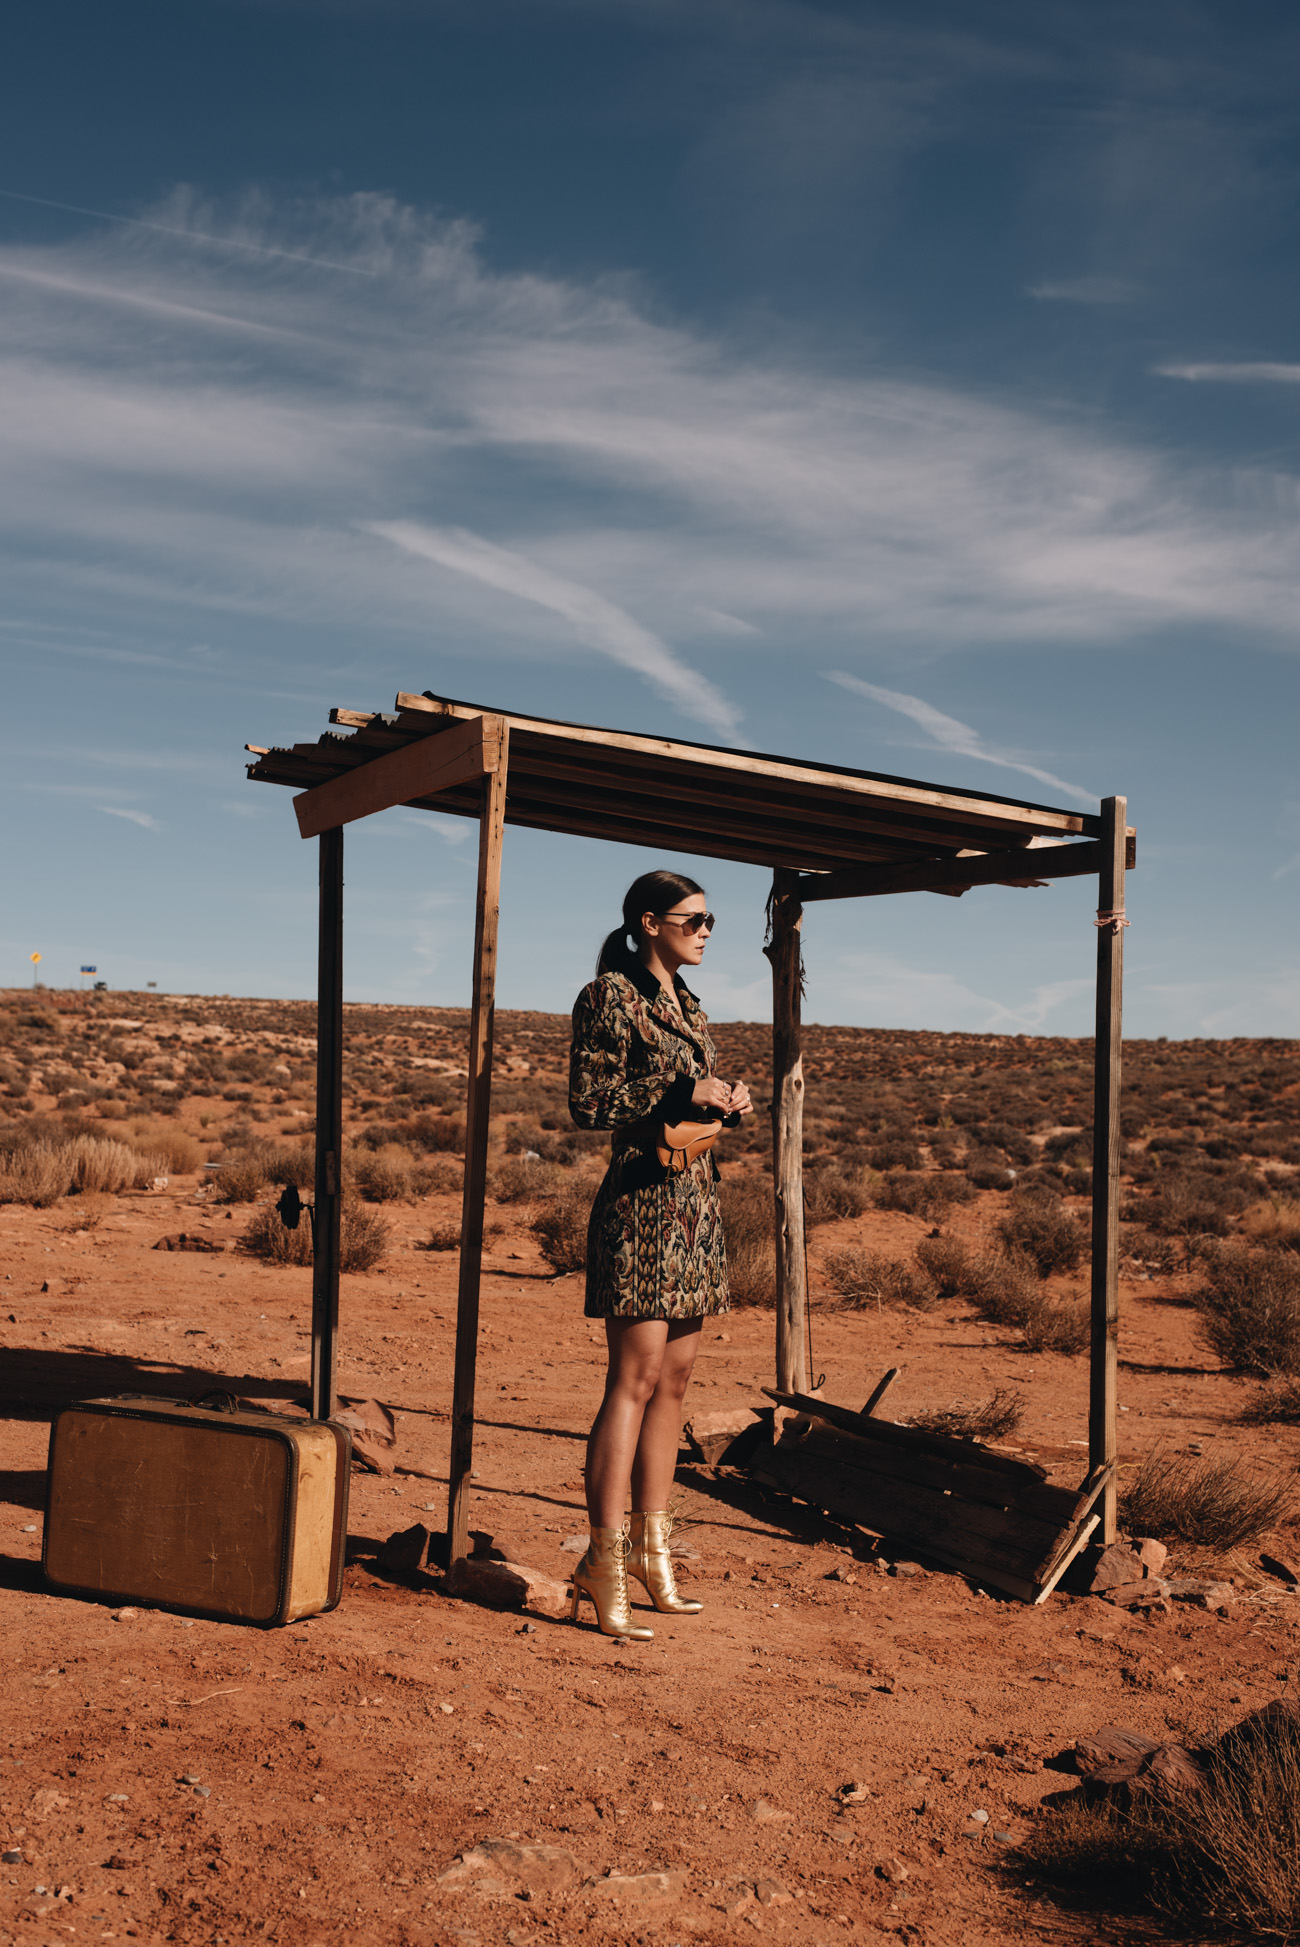 Fashion-Editorial-blogger-Foto-Shooting-Highway-Monument-Valley-Road-Trip-Koffer-Outdoor-location-nina-schwichtenberg-fashiioncarpet